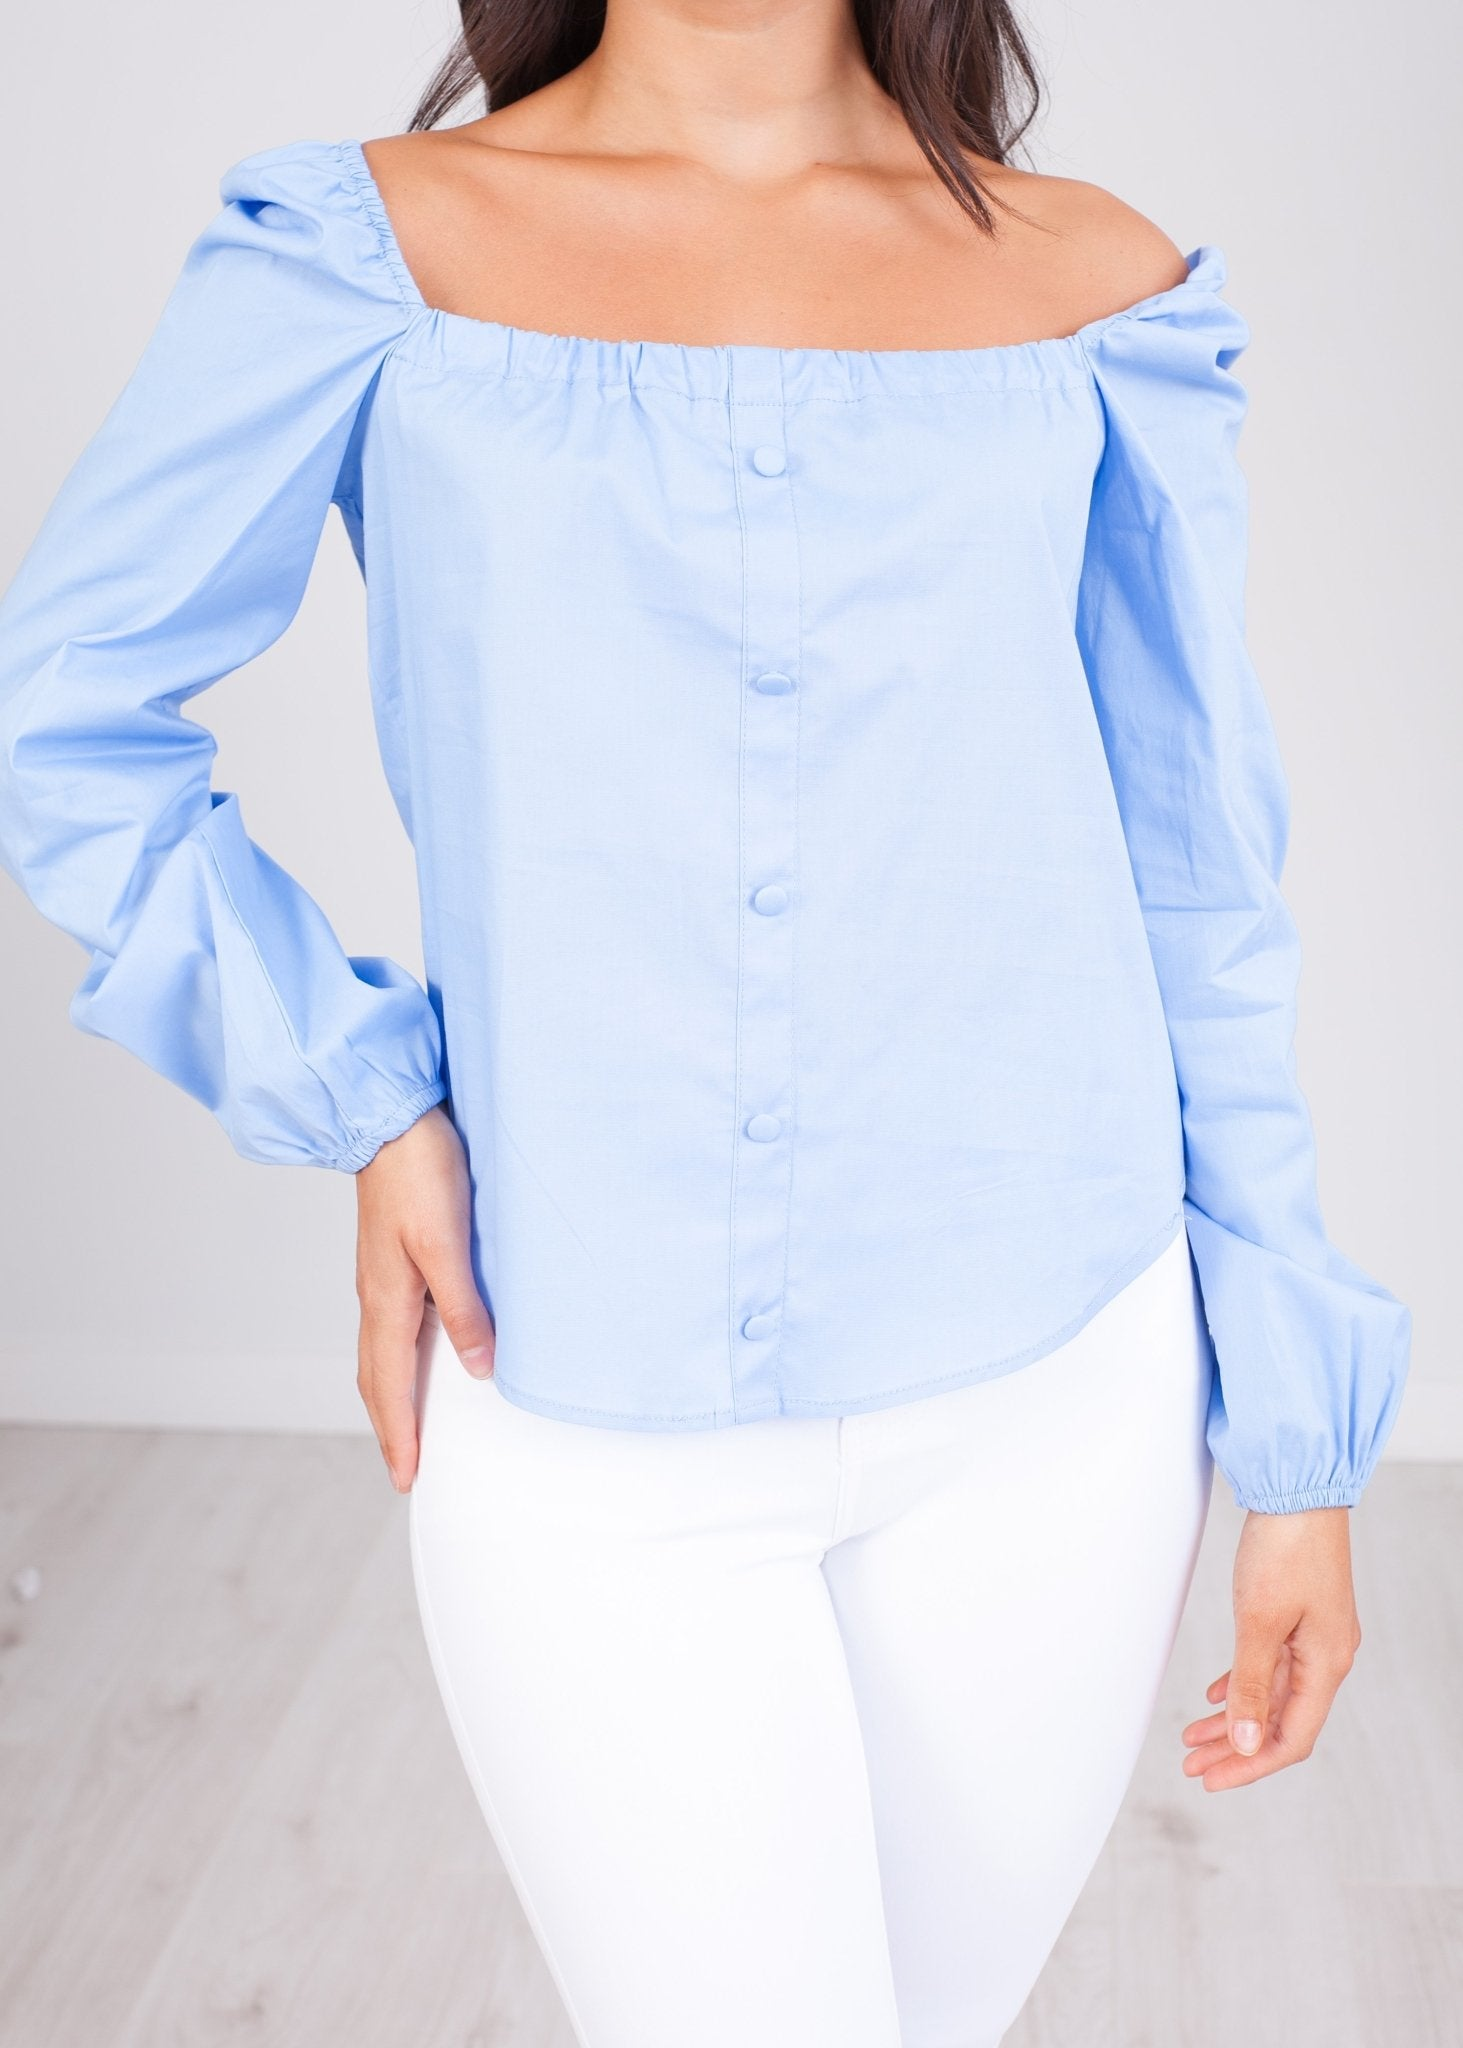 Heidi Blue Bardot Top - The Walk in Wardrobe